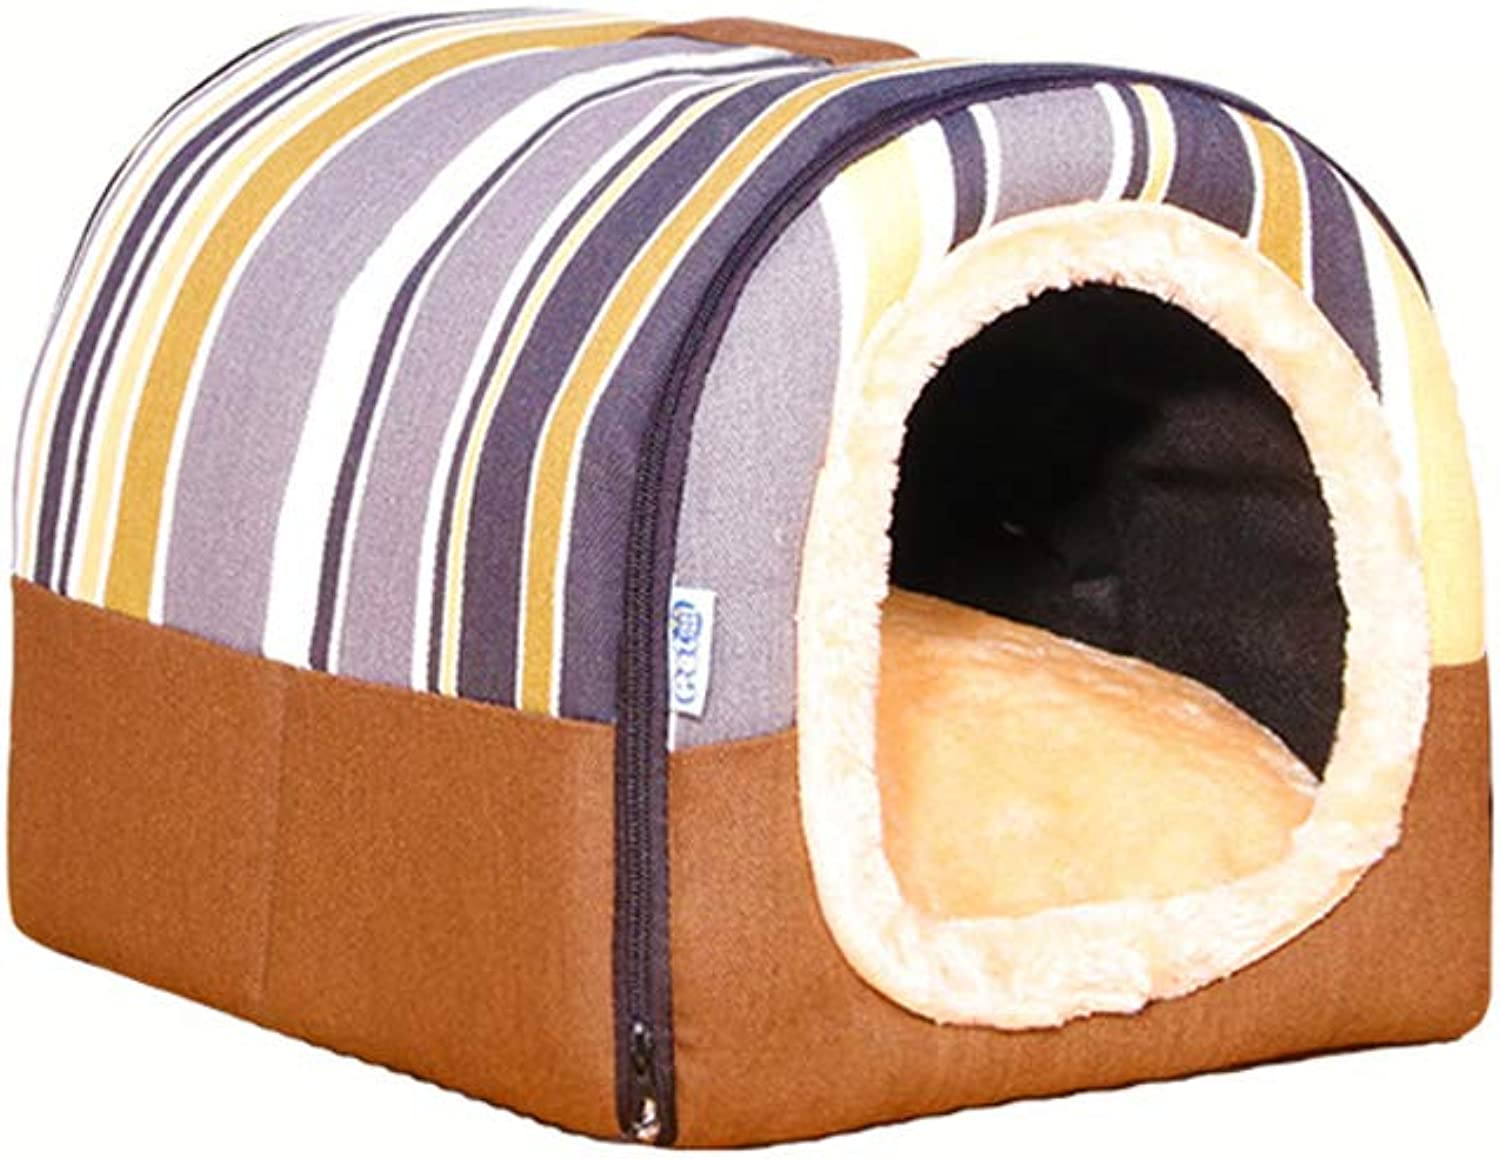 TTLTLCWW Dog Bed, Small, Medium and Large Dog House, Remable and Wasable Pet Bed, Cat Bed, Multisize (colore: BROWN, Dimensione: S)